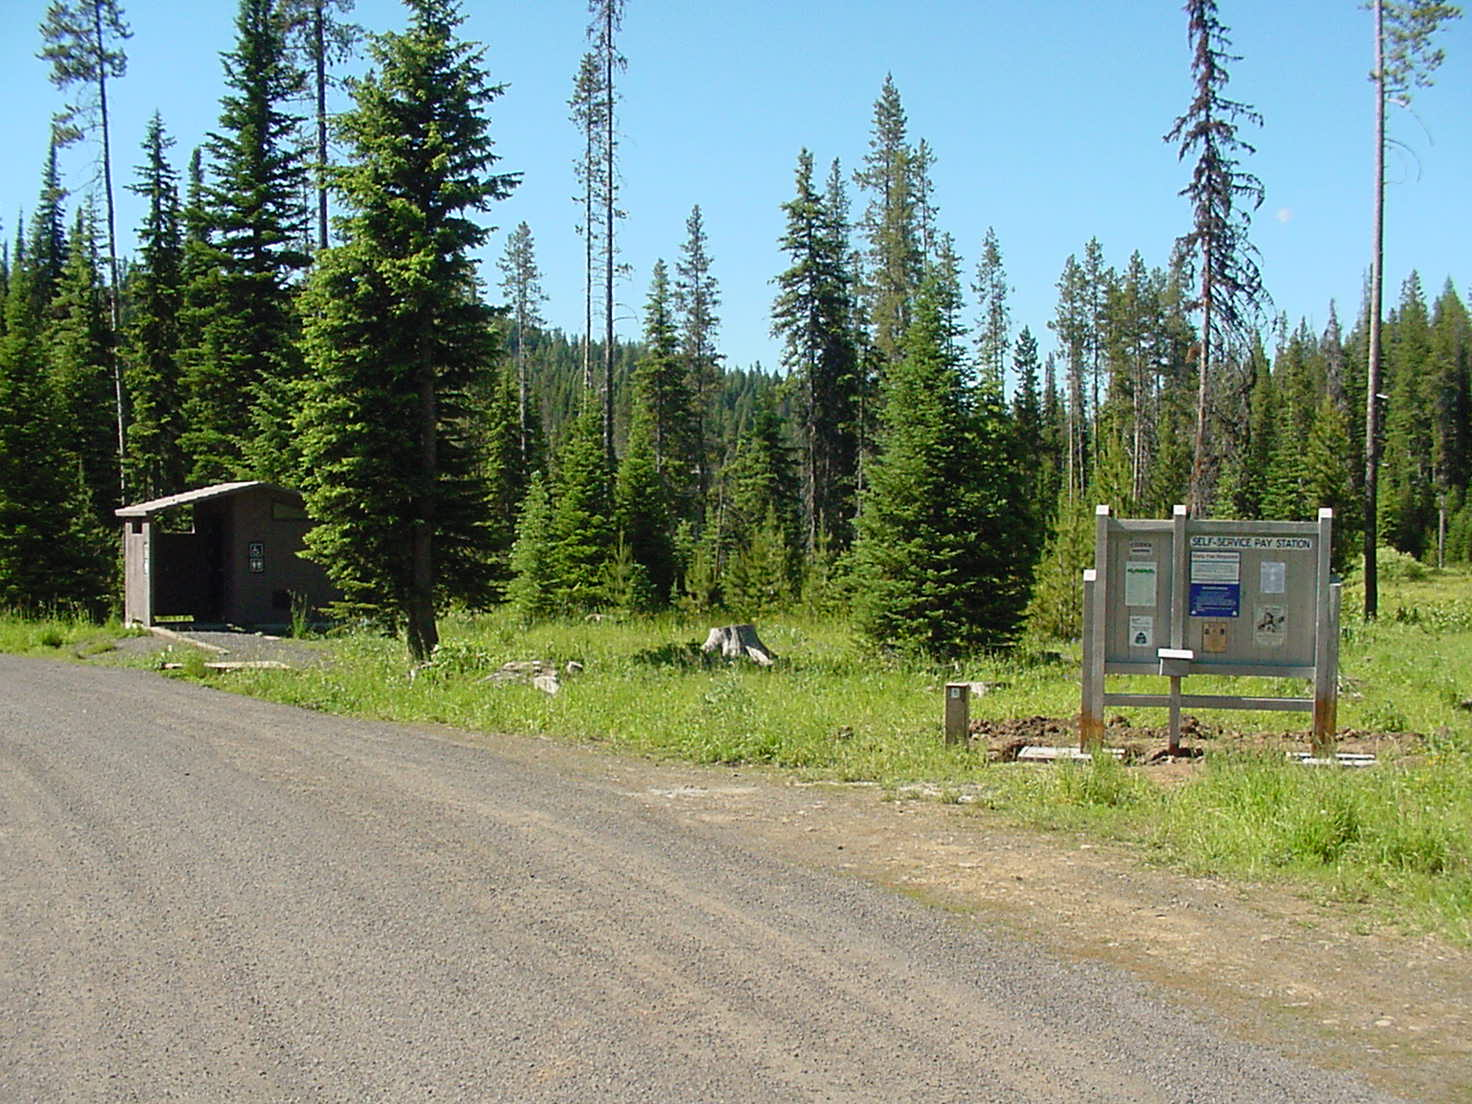 Forest campground with toilet building in foreground